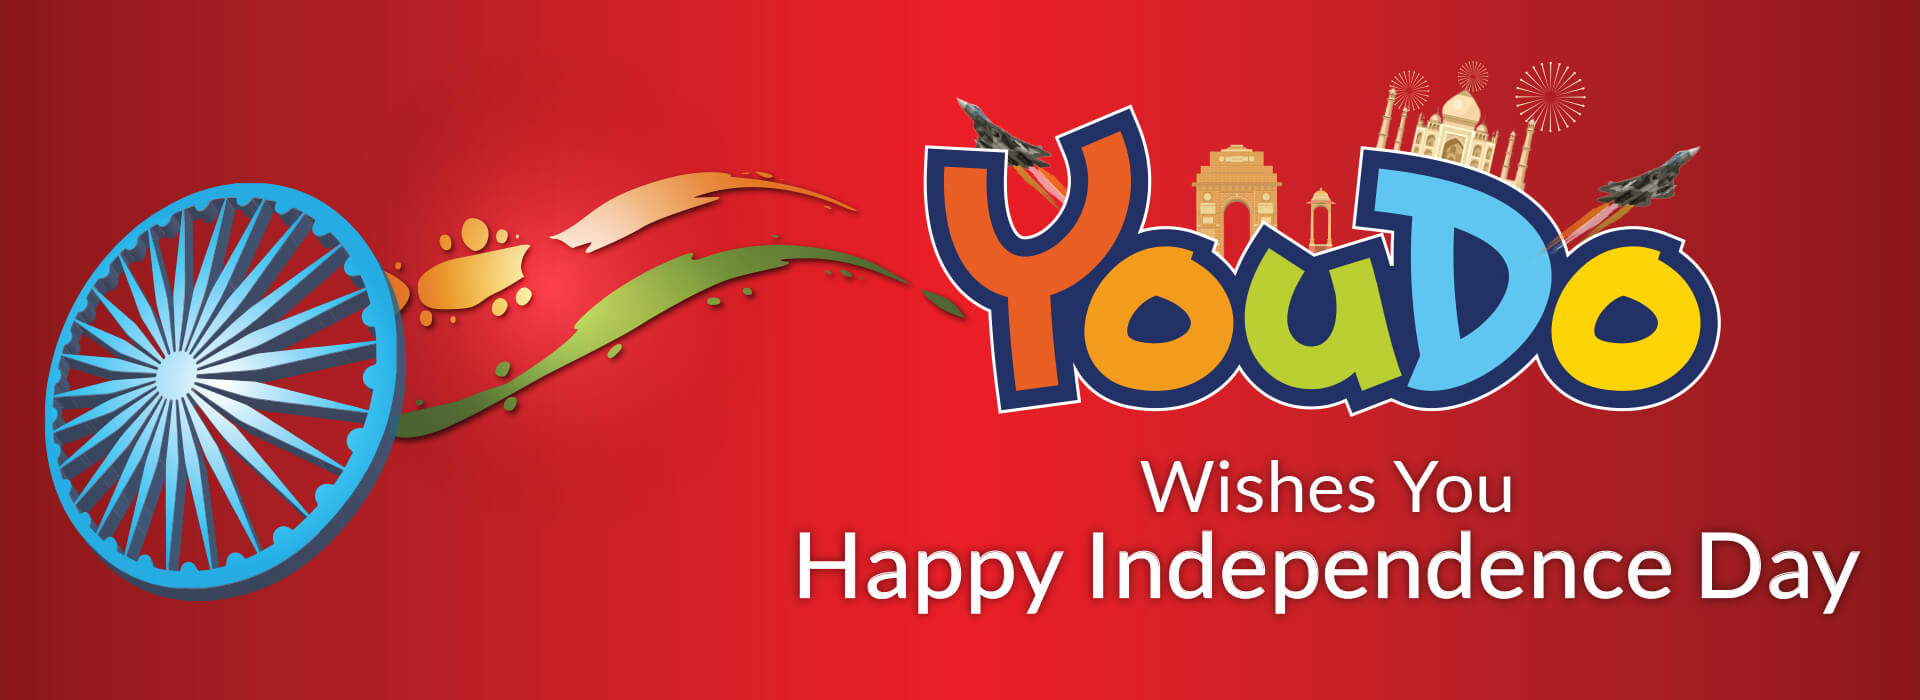 YouDo Independence day